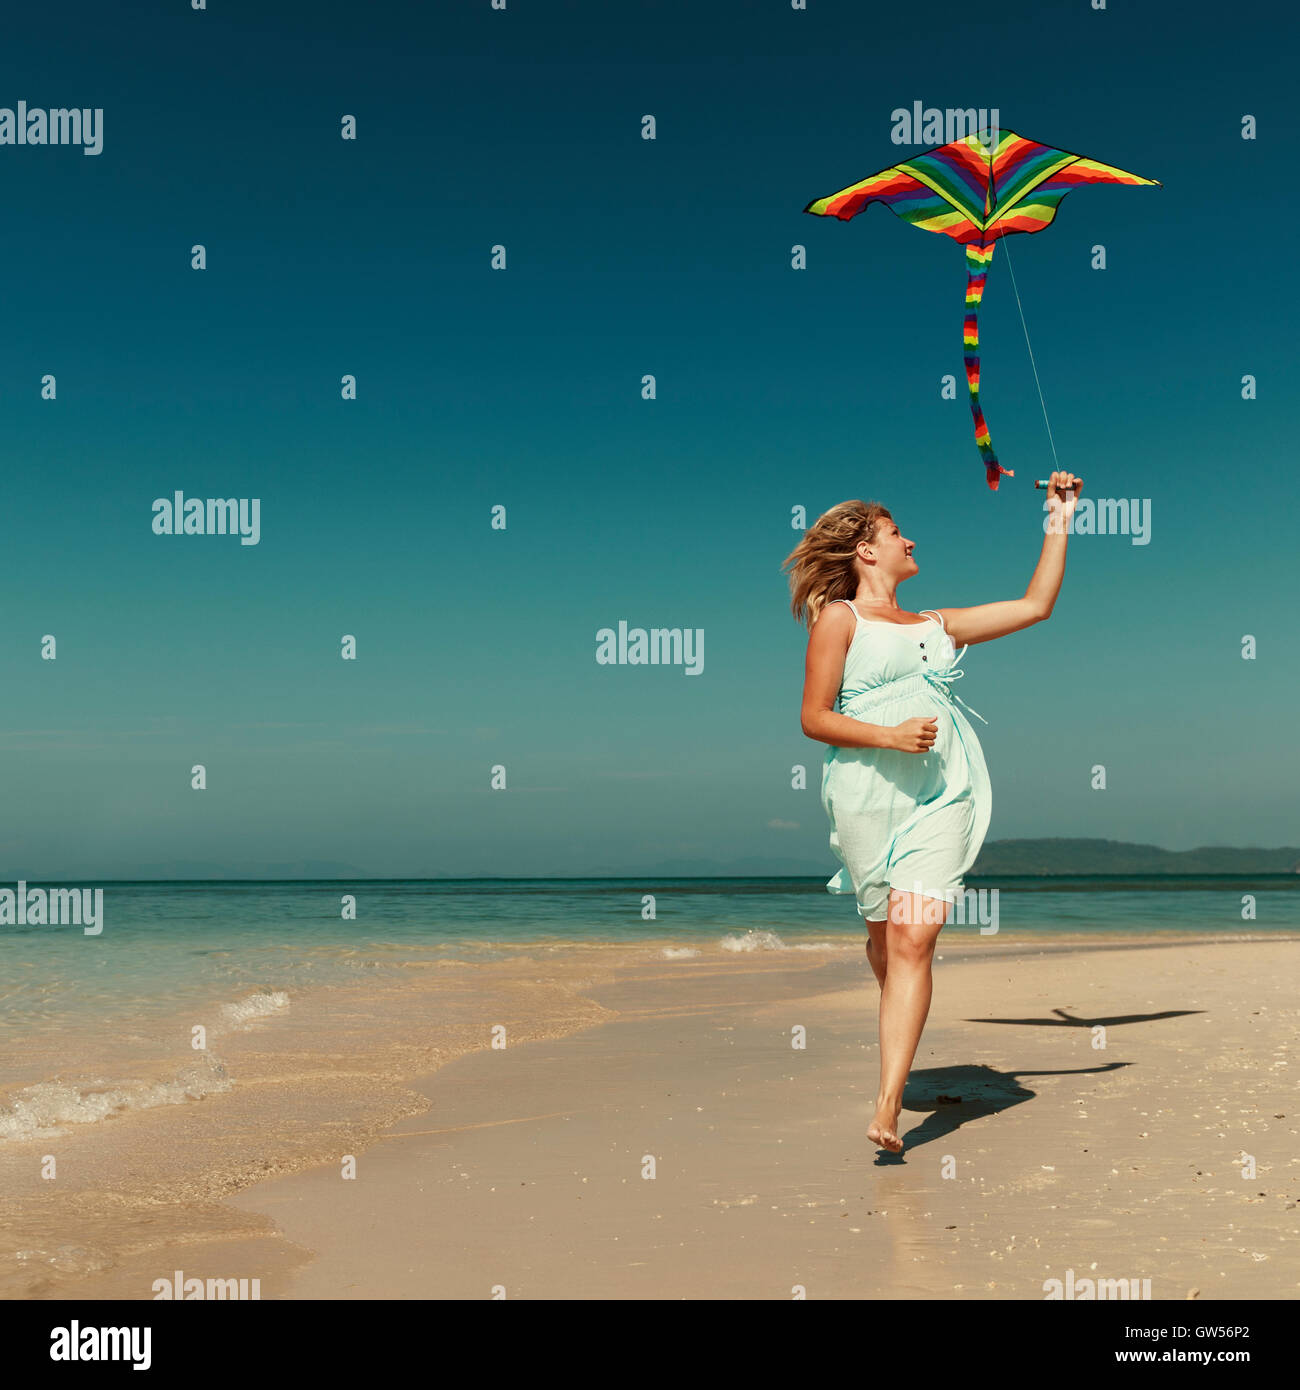 Beach Kite Flying Getaway Holiday Concept - Stock Image